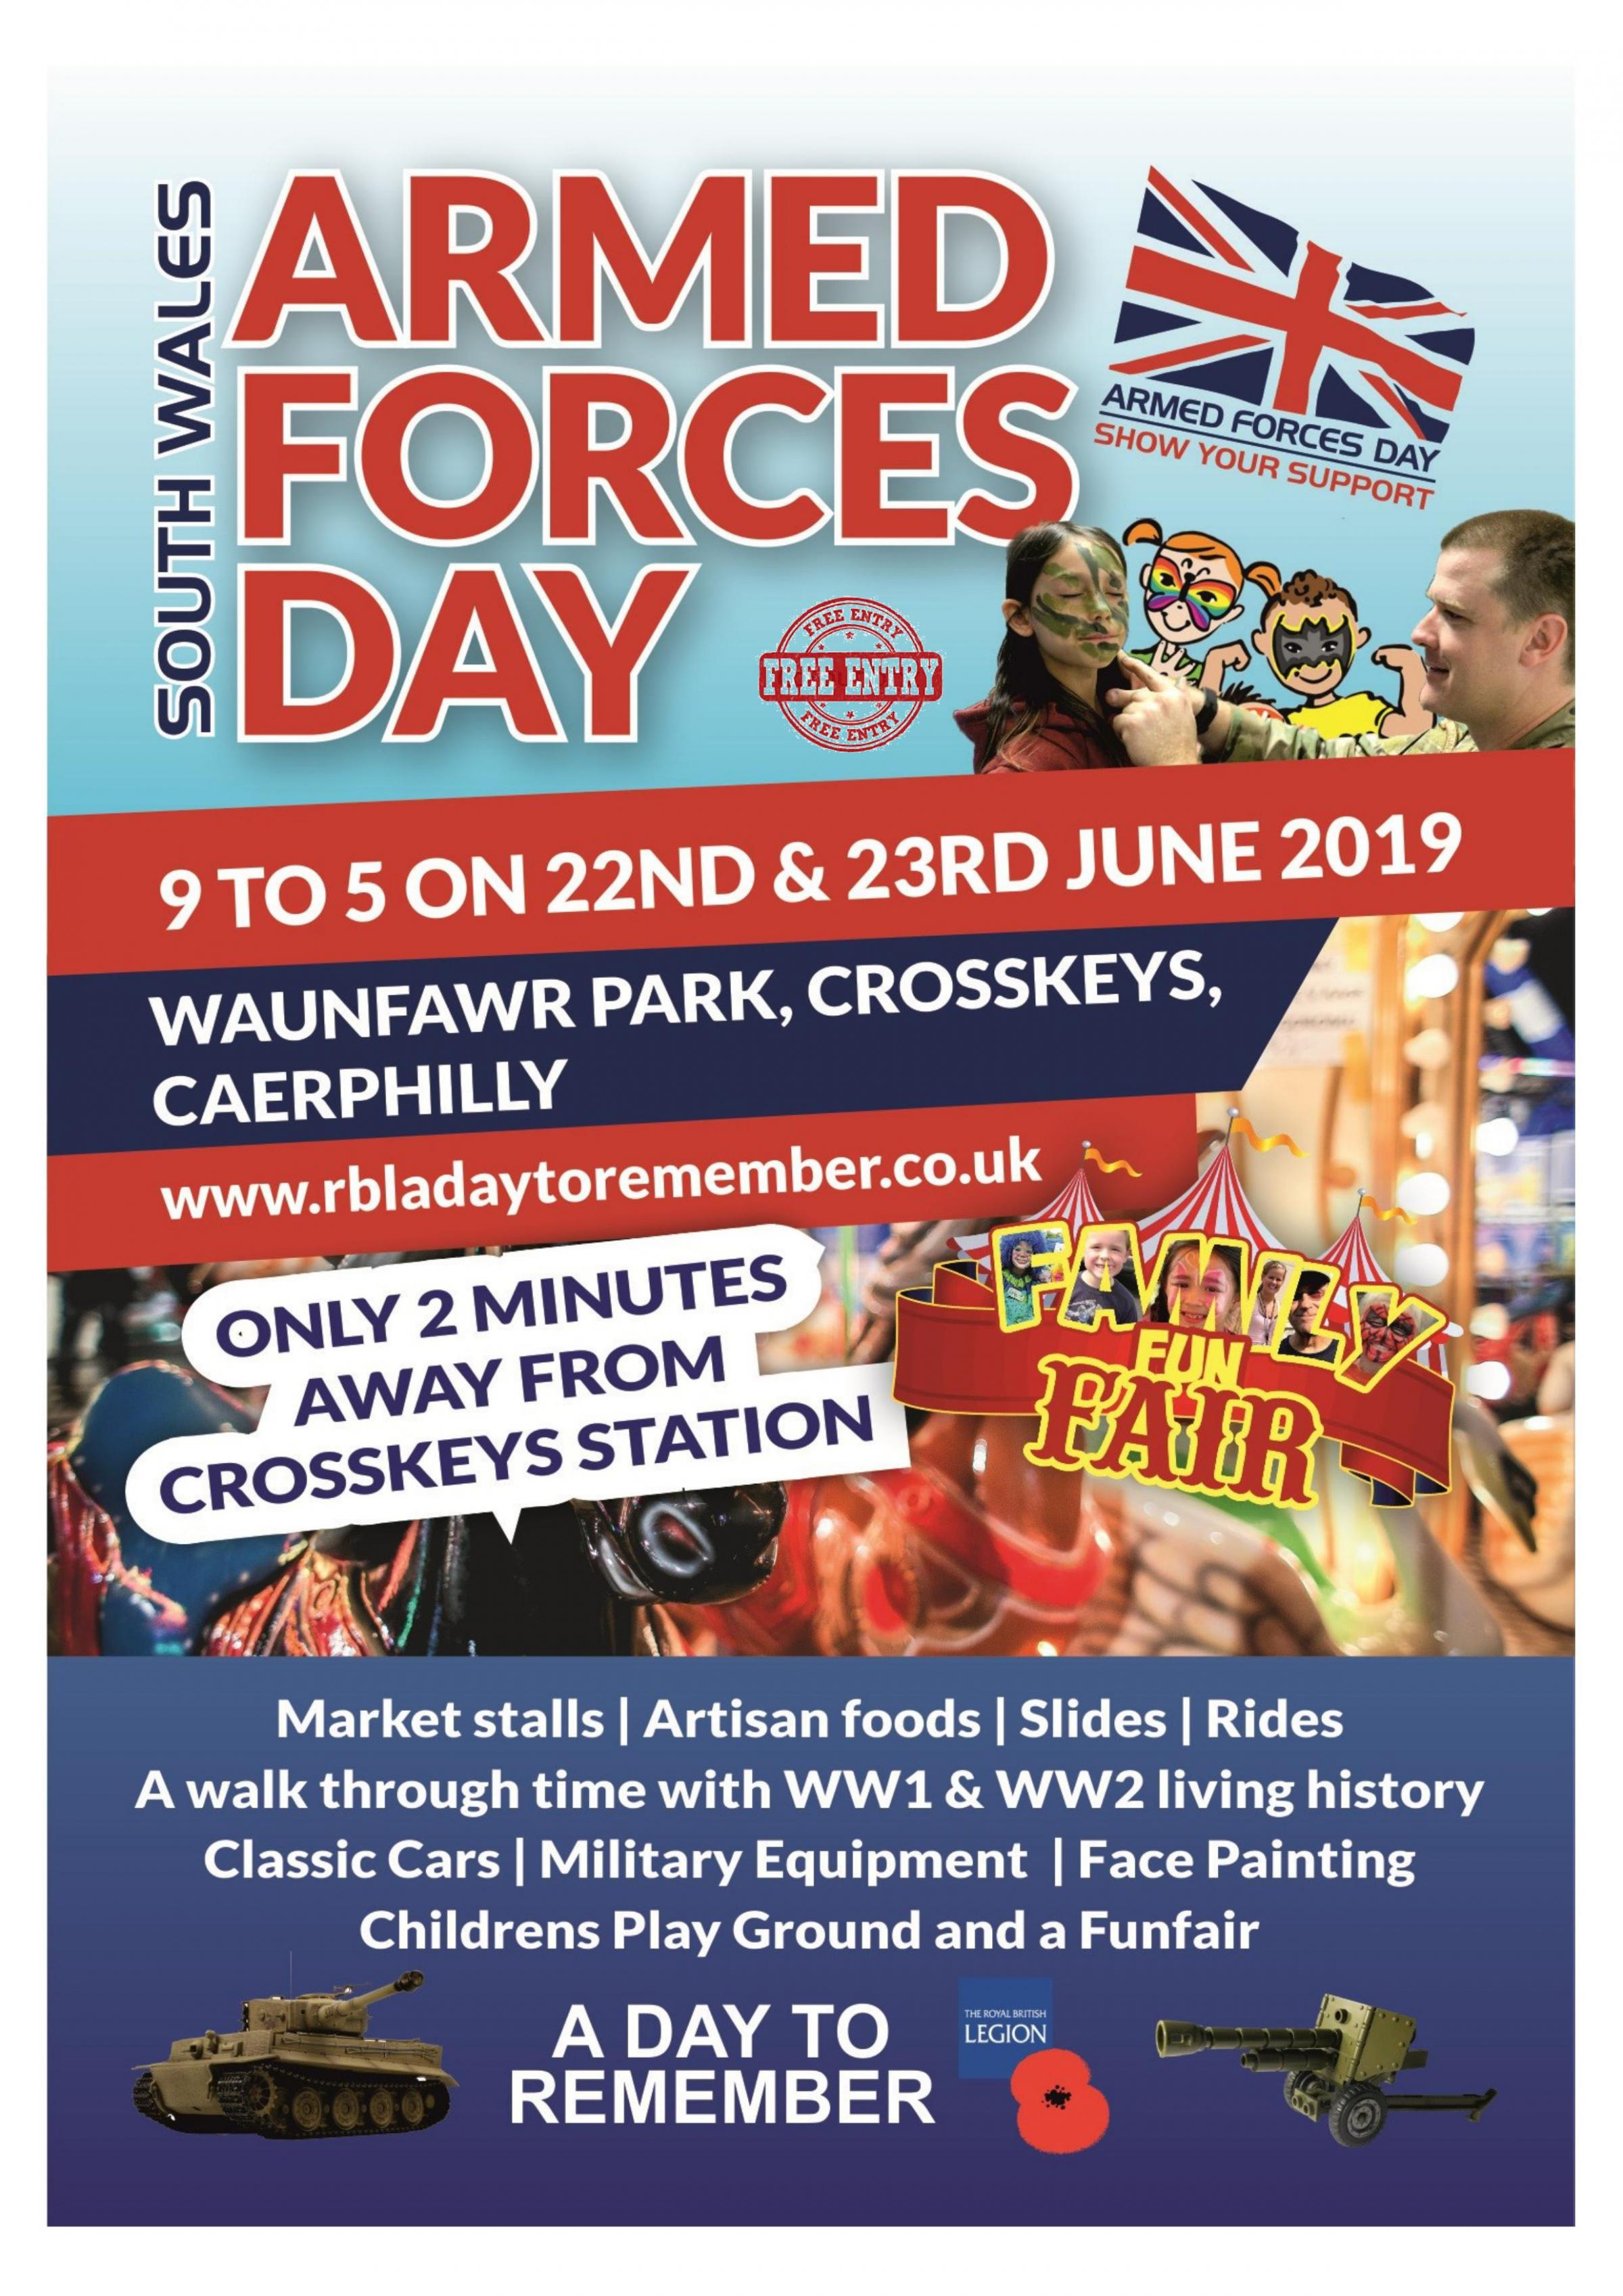 South Wales Armed Forces Day Weekend